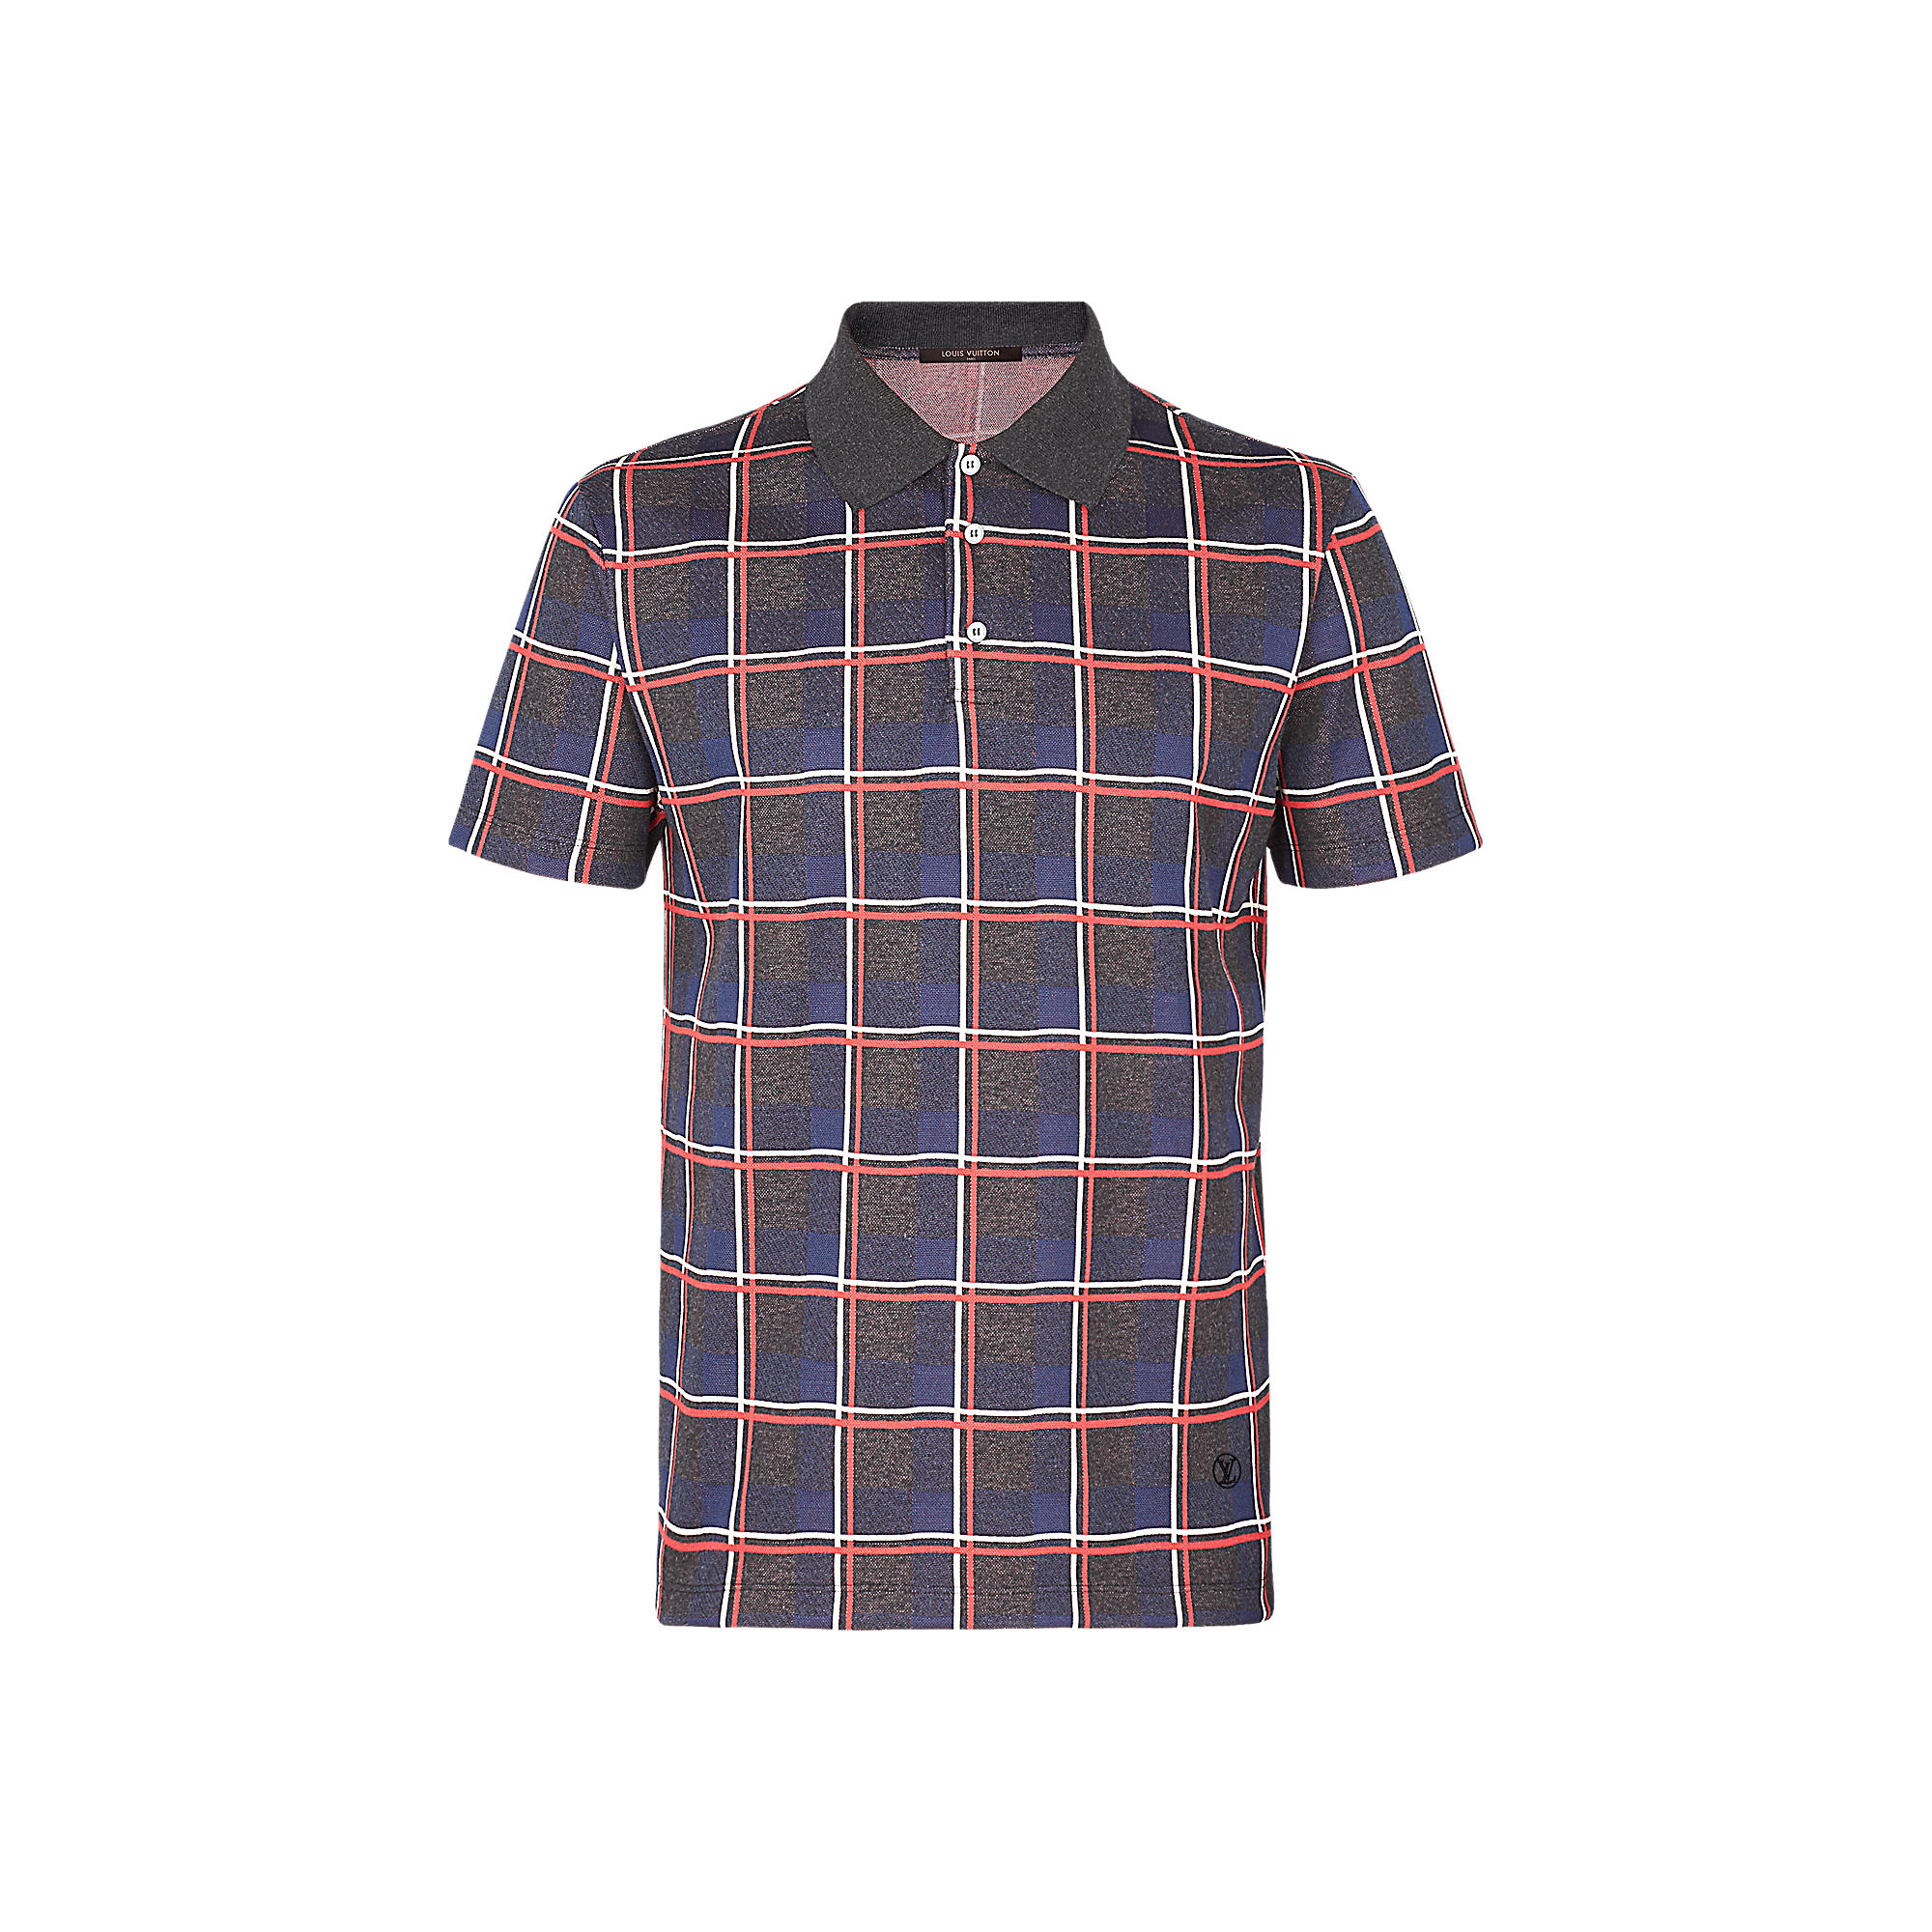 Louis Vuitton Uomo Polo jacquard a quadri